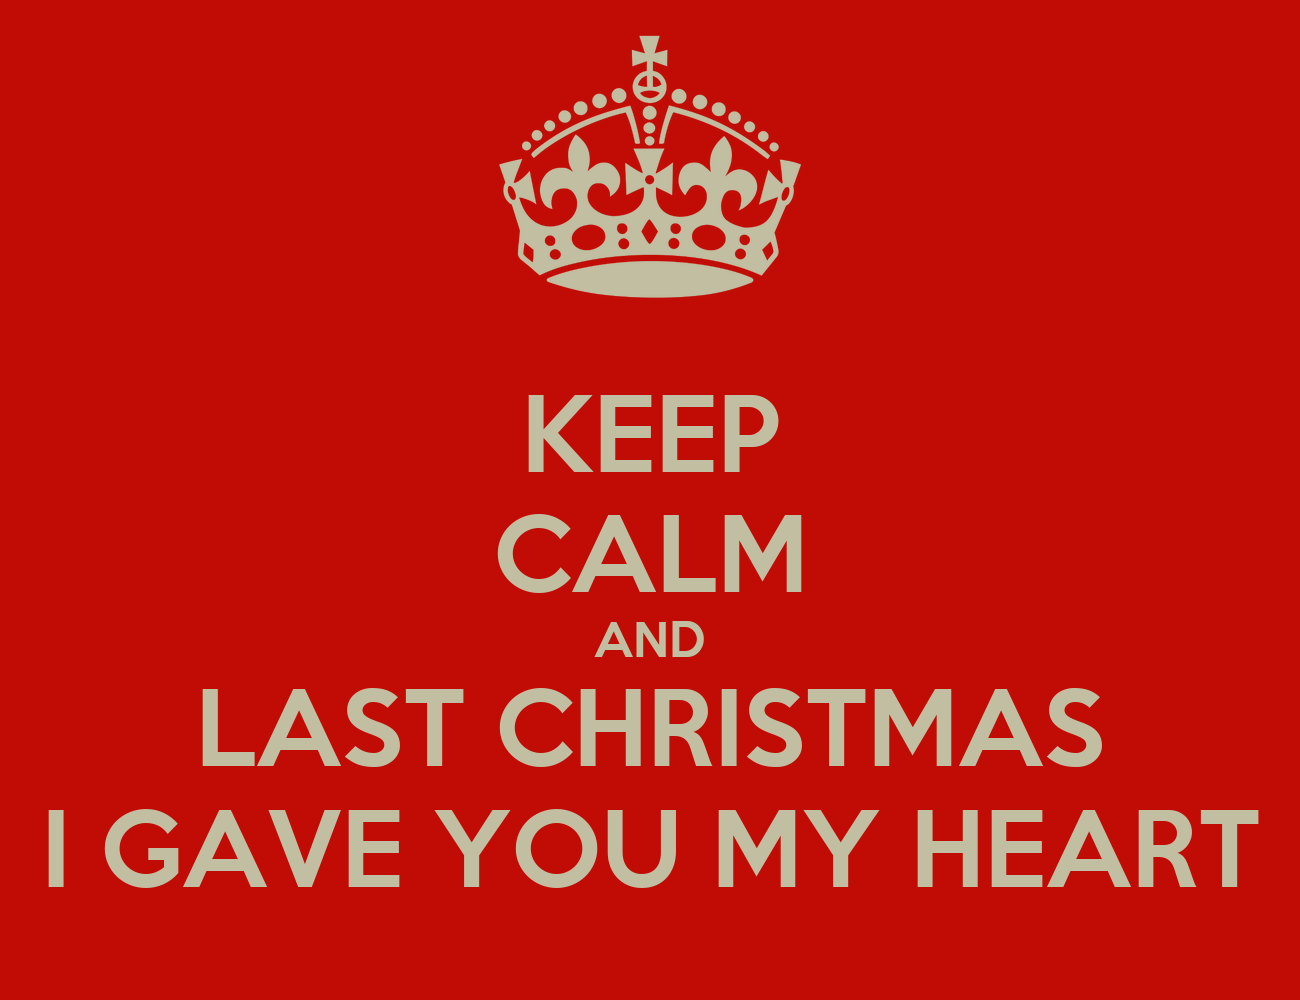 last christmas i gave you my heart and: